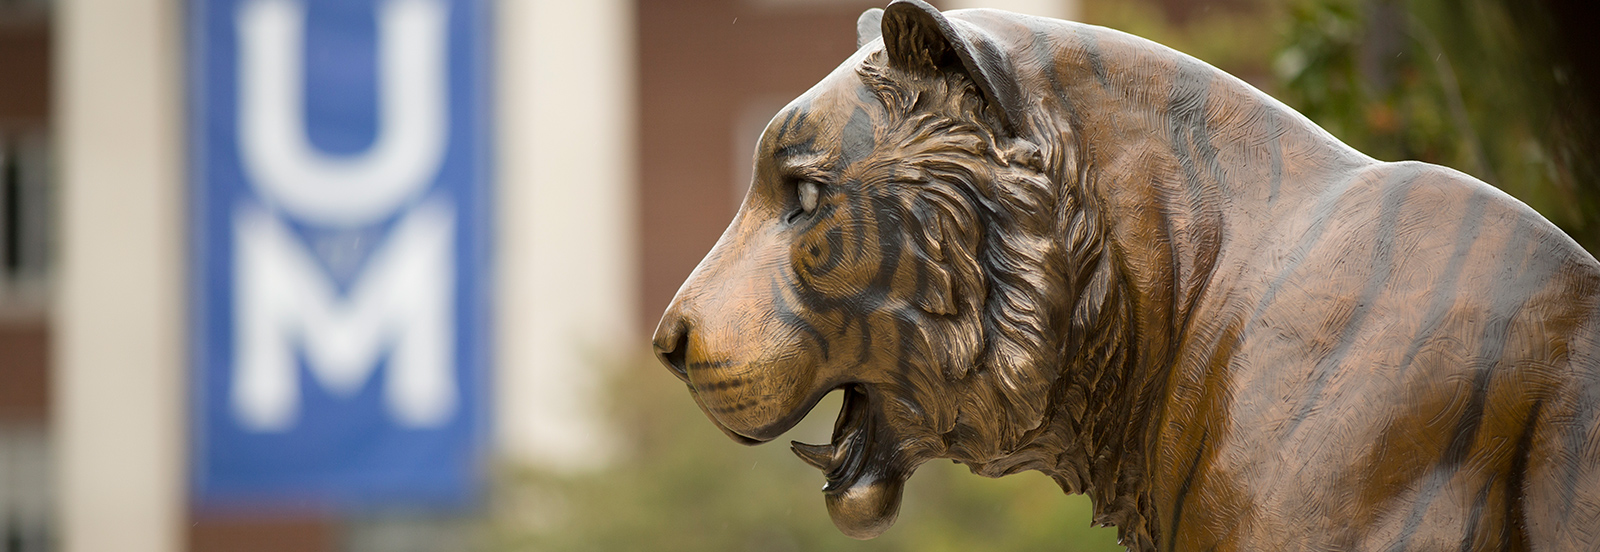 photo of bronze tiger statue with UofM banner in the background